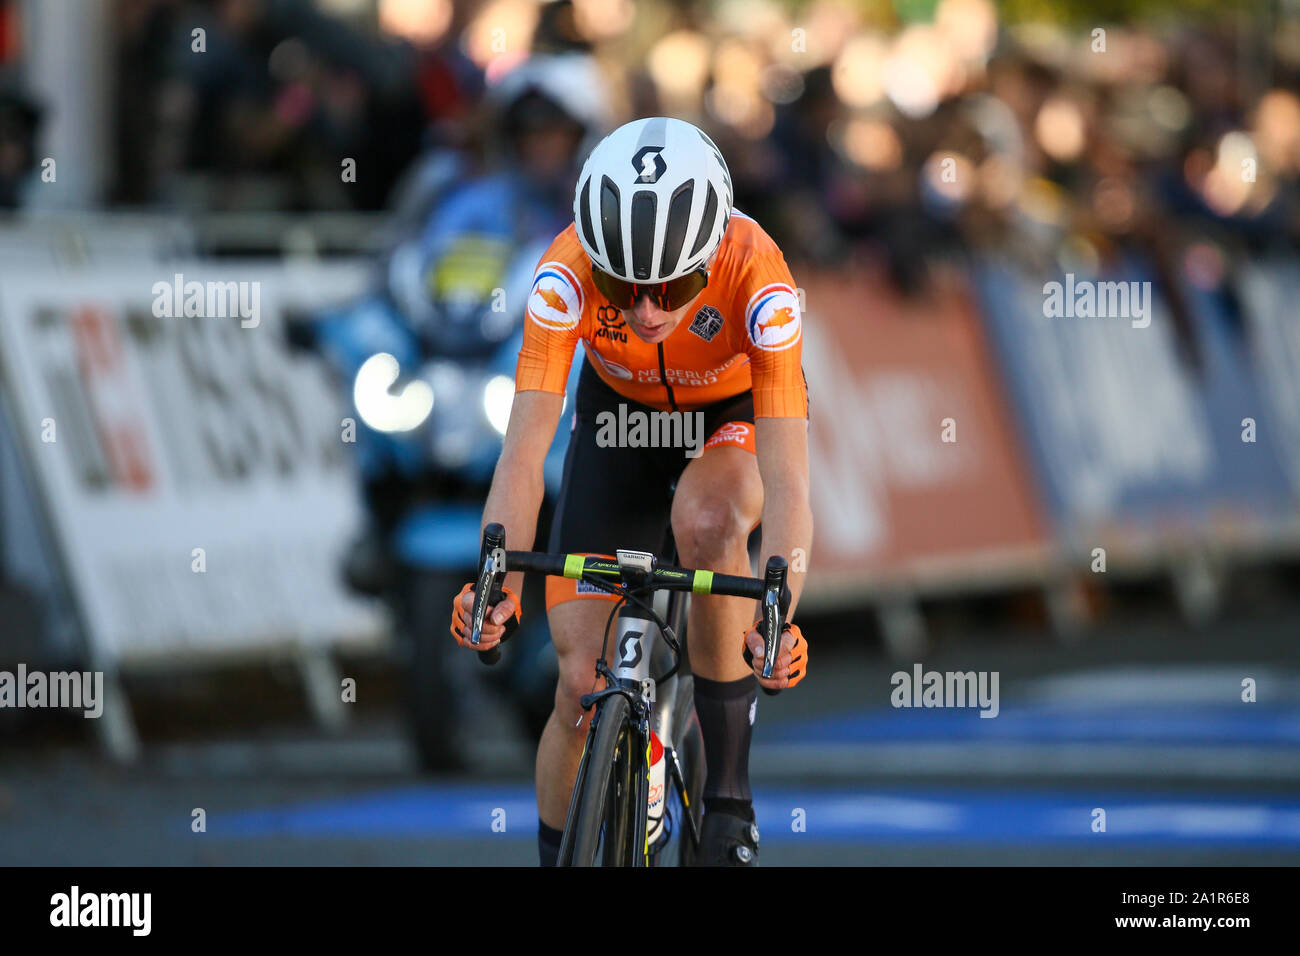 Harrogate, UK. 28th Sep, 2019. Chloe Dygert of the USA just misses out on the podium in the 2019 UCI Road World Championships Womens Elite Road Race. September 28, 2019 Credit Dan-Cooke/Alamy Live News Stock Photo